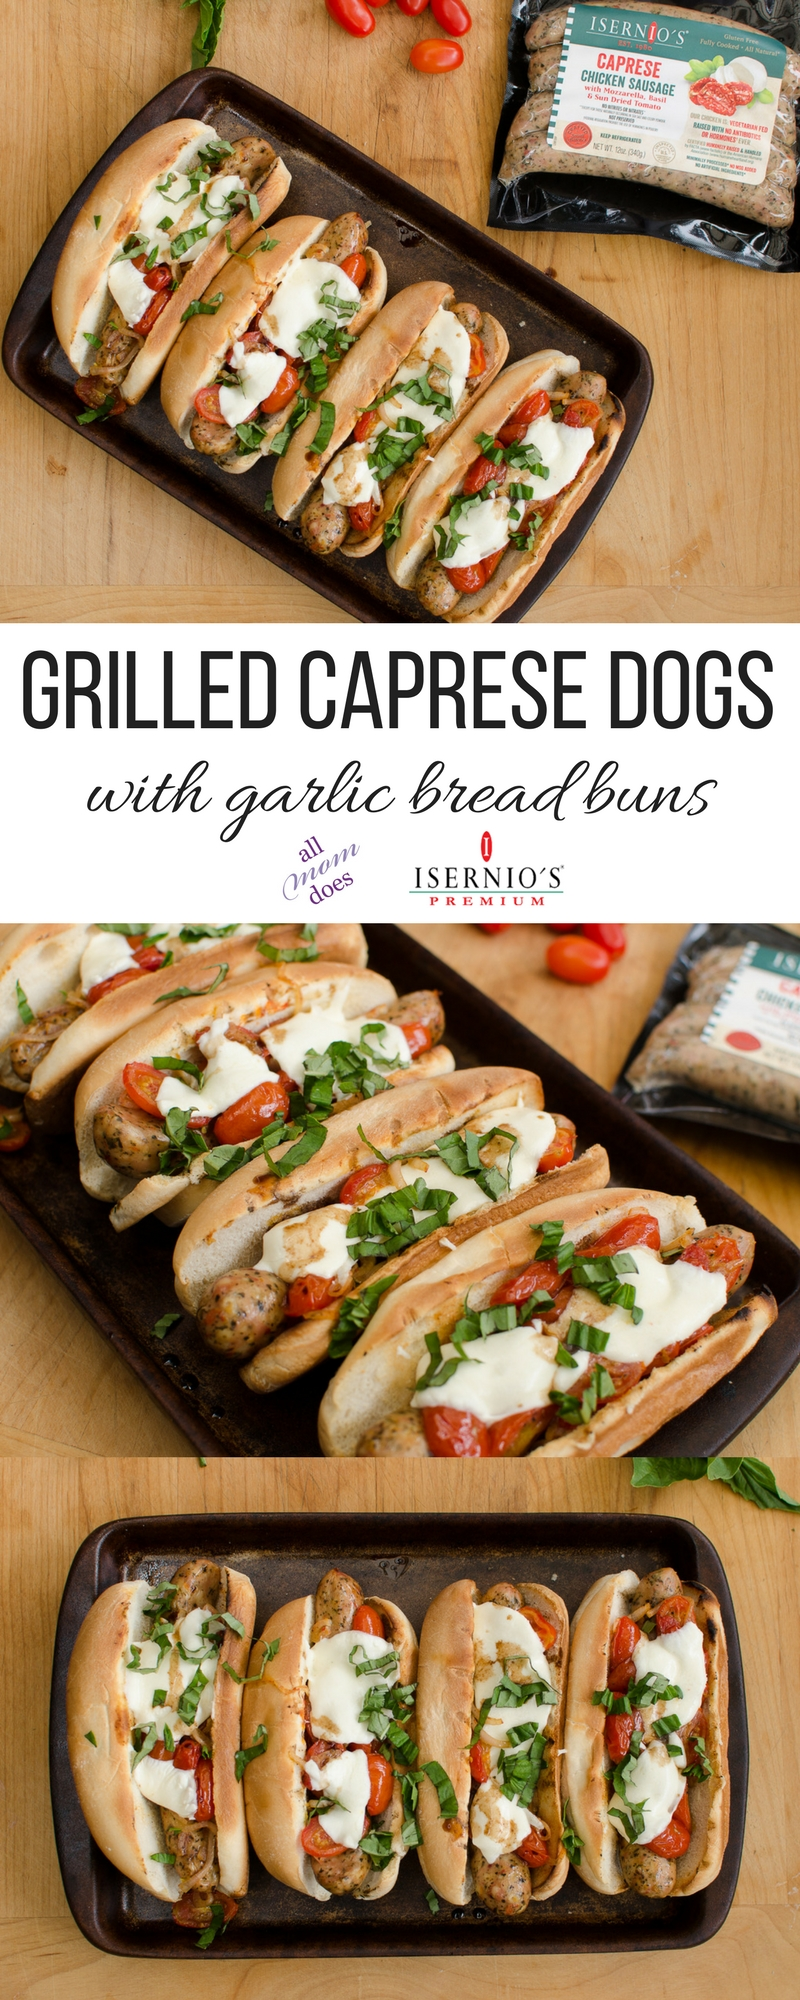 Grilled Caprese Dogs Recipe #hotdogs #chickensausage #caprese